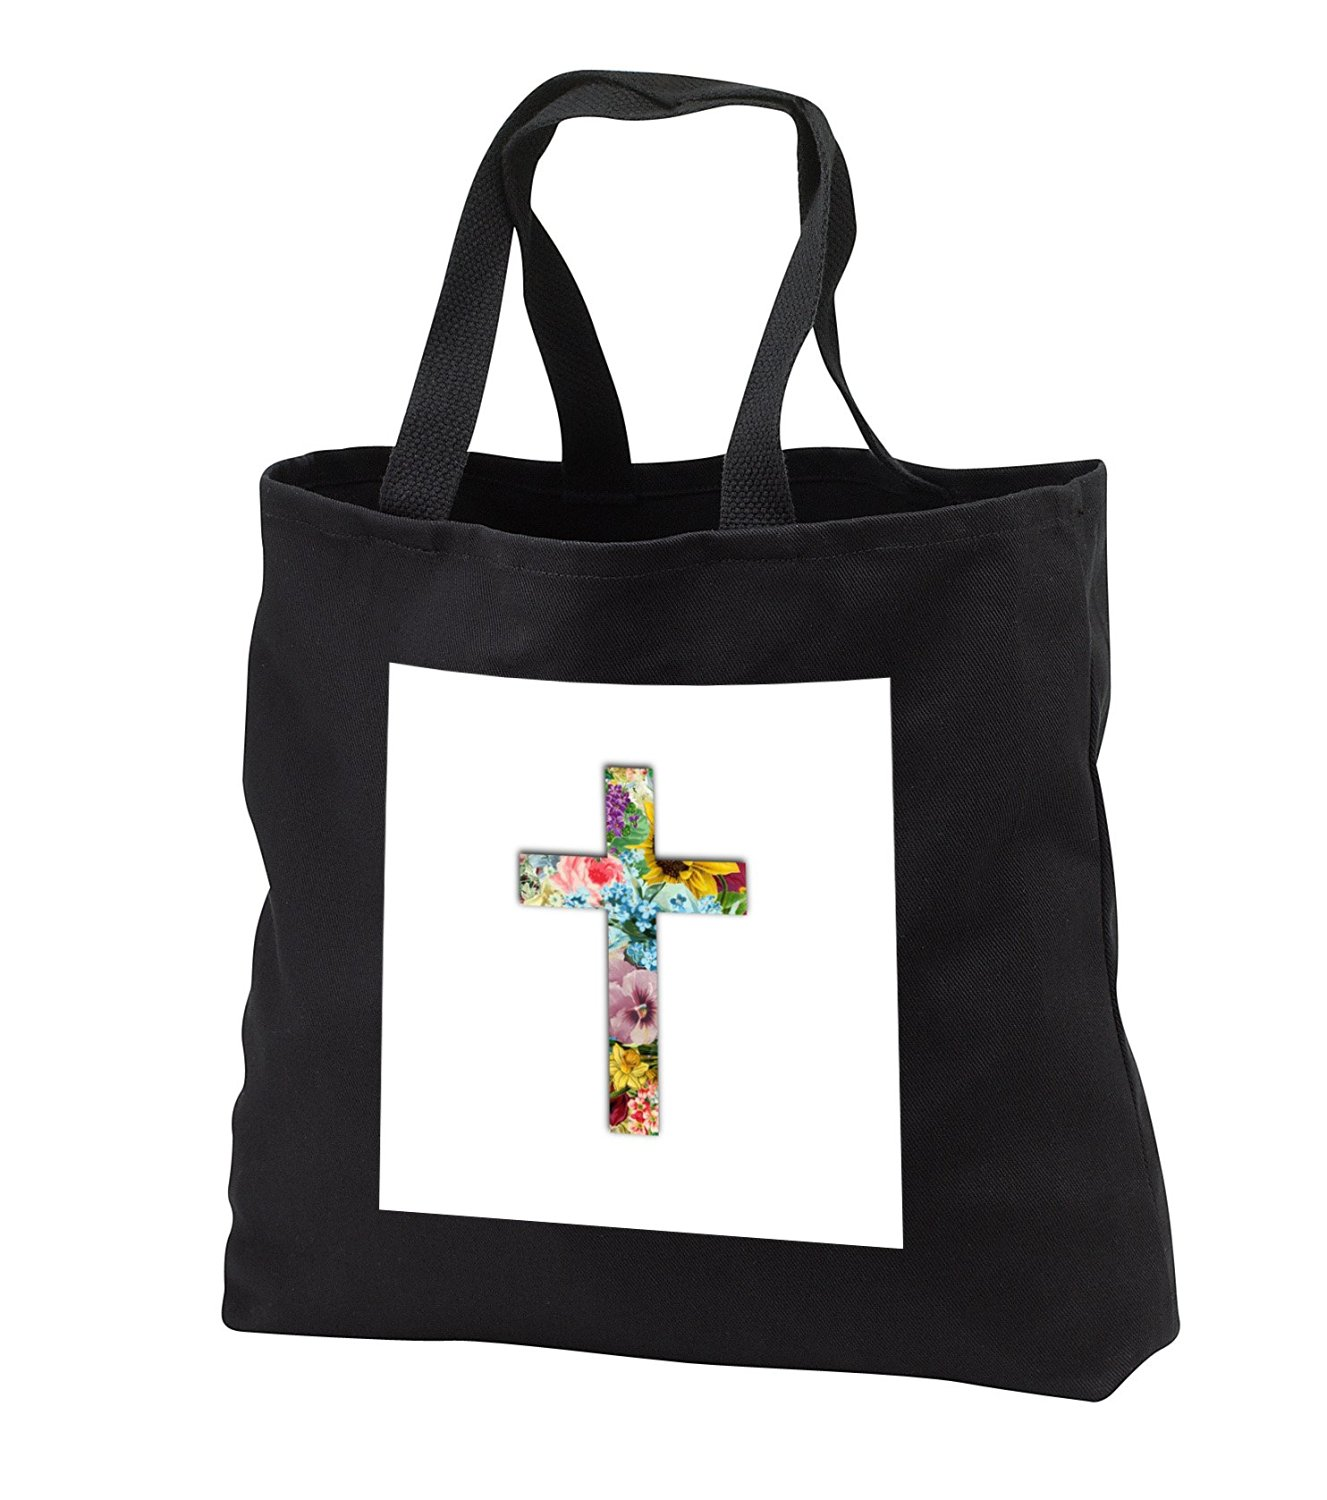 tb_185474 InspirationzStore Christian Designs - Floral Christian Cross. colorful girly flower pattern religious symbol - Tote Bags